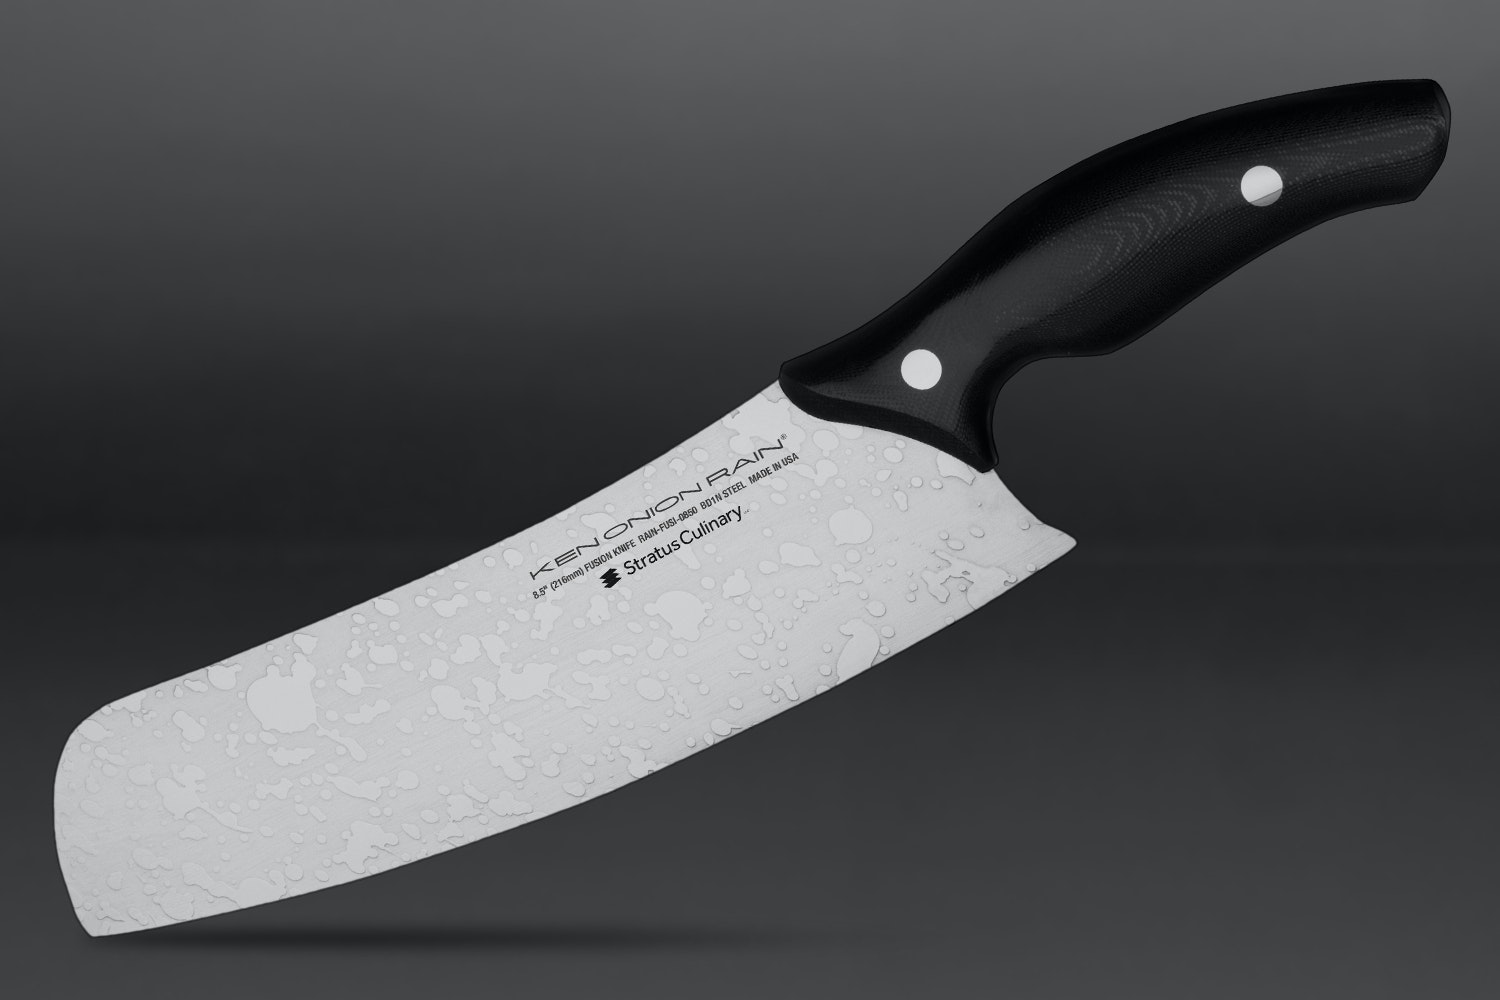 8.5-inch Fusion Knife (+ $28)